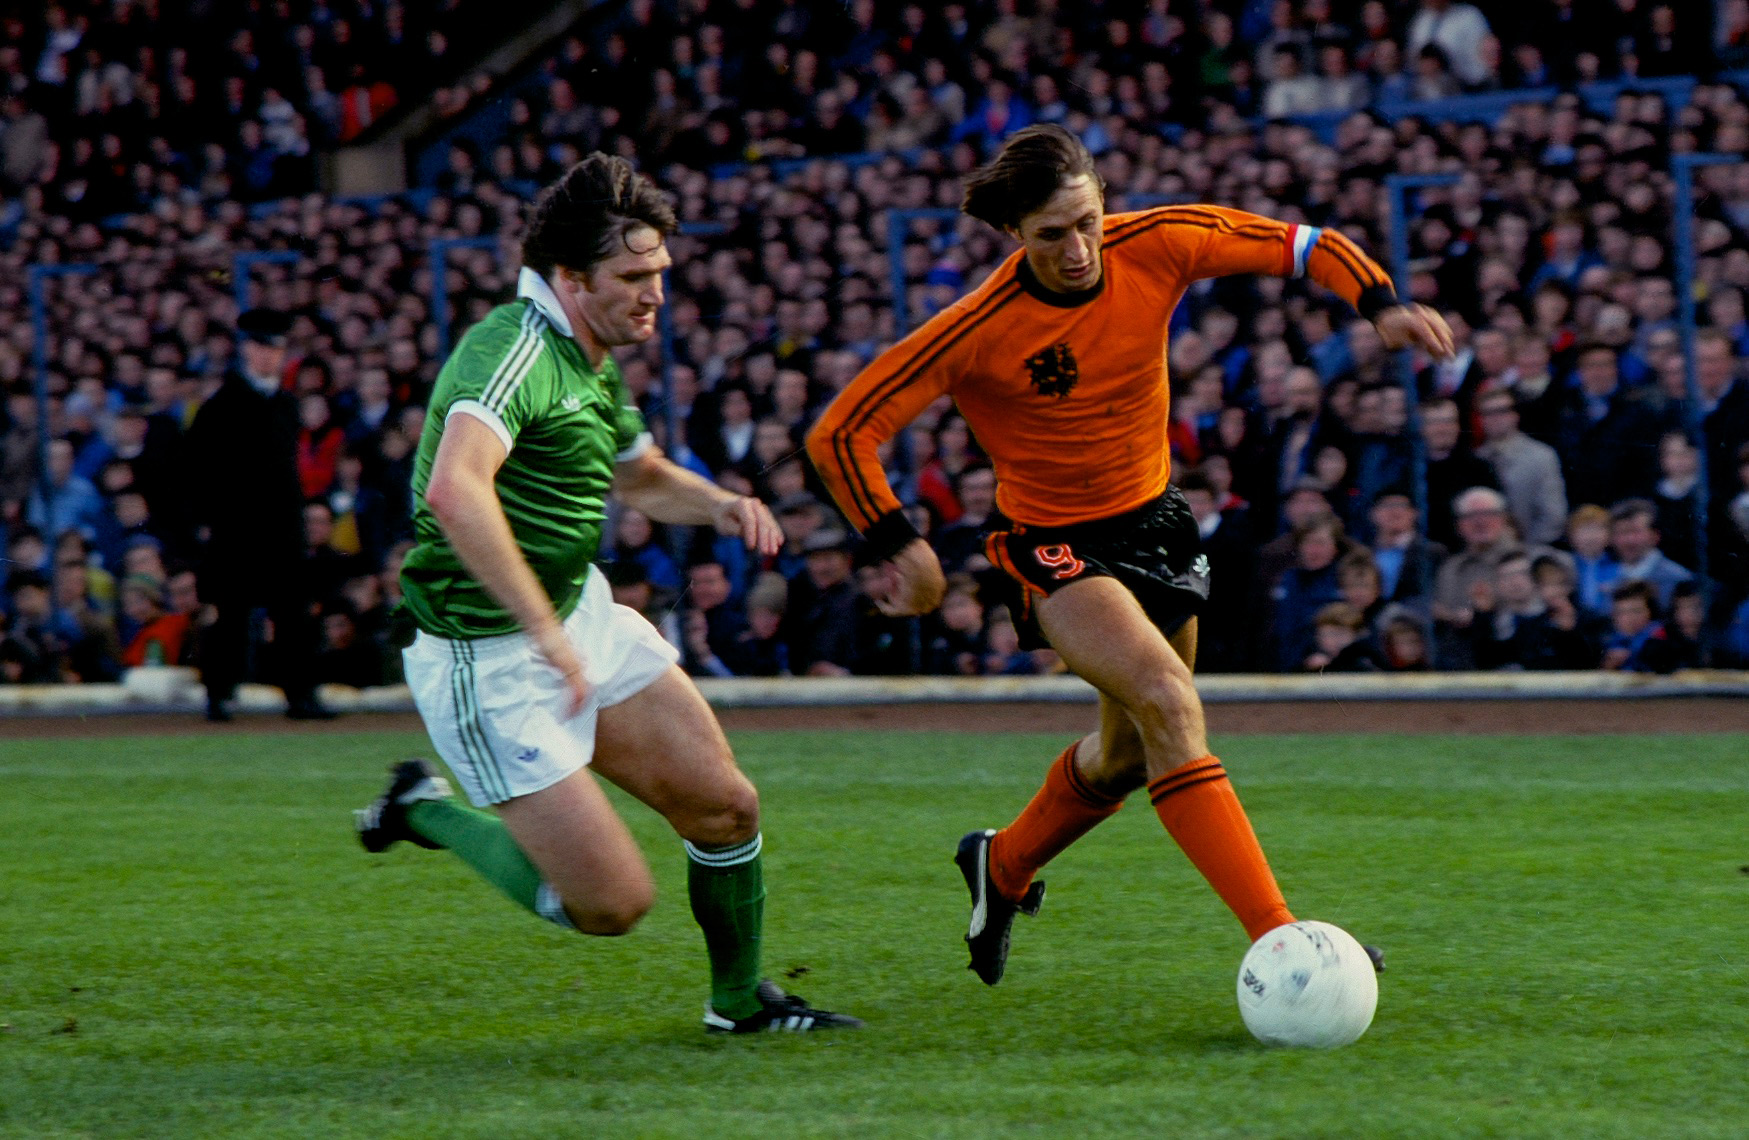 Johan Cruyff, Holland v. Northern Ireland, Windsor Park, Belfast